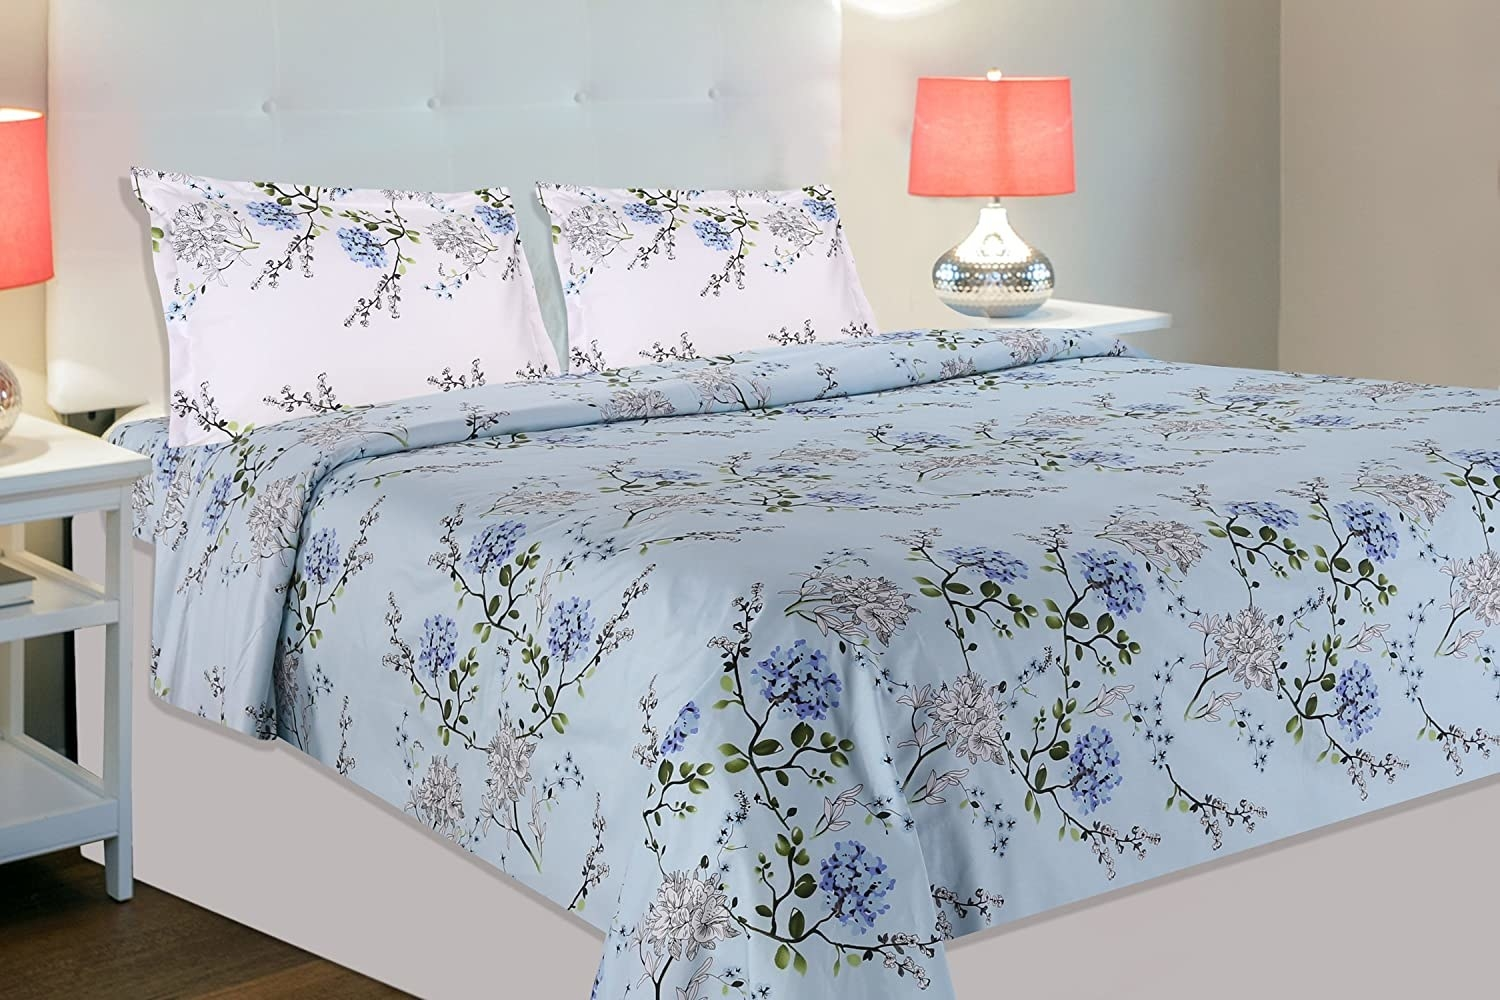 A blue floral bedsheet on a bed